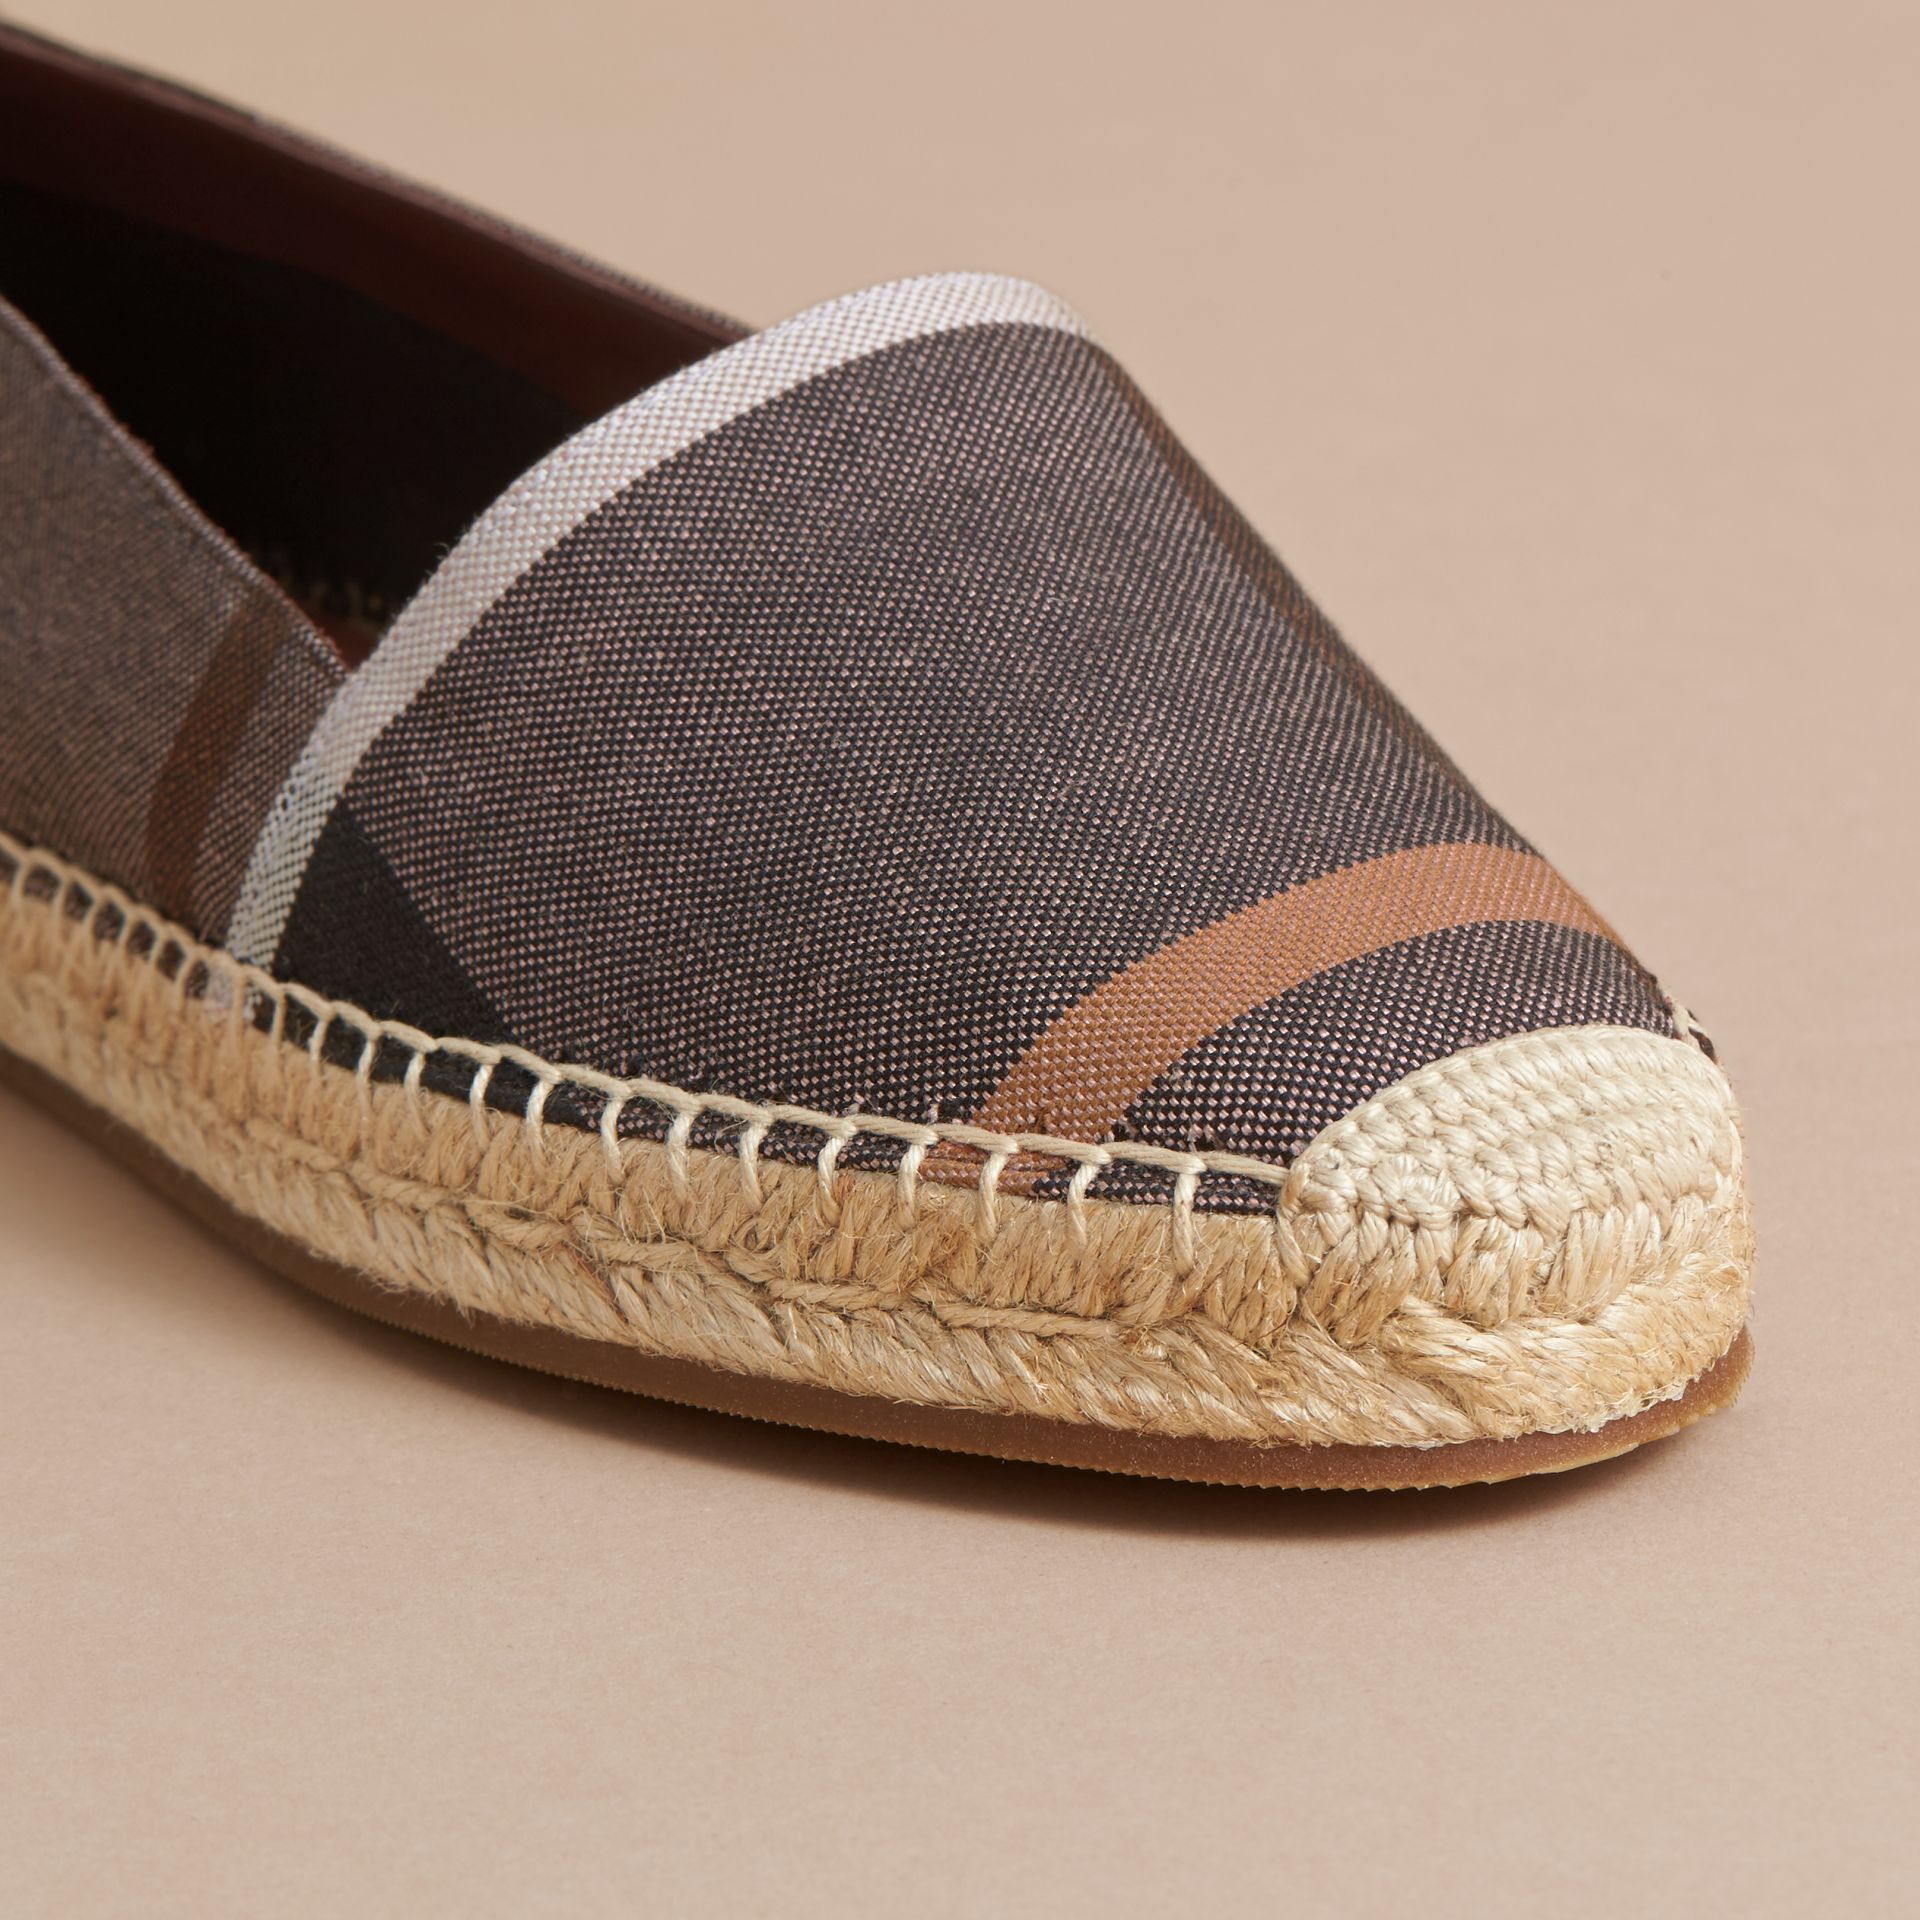 Check Linen Cotton Espadrilles in Cerise Purple - Women | Burberry Singapore - gallery image 2